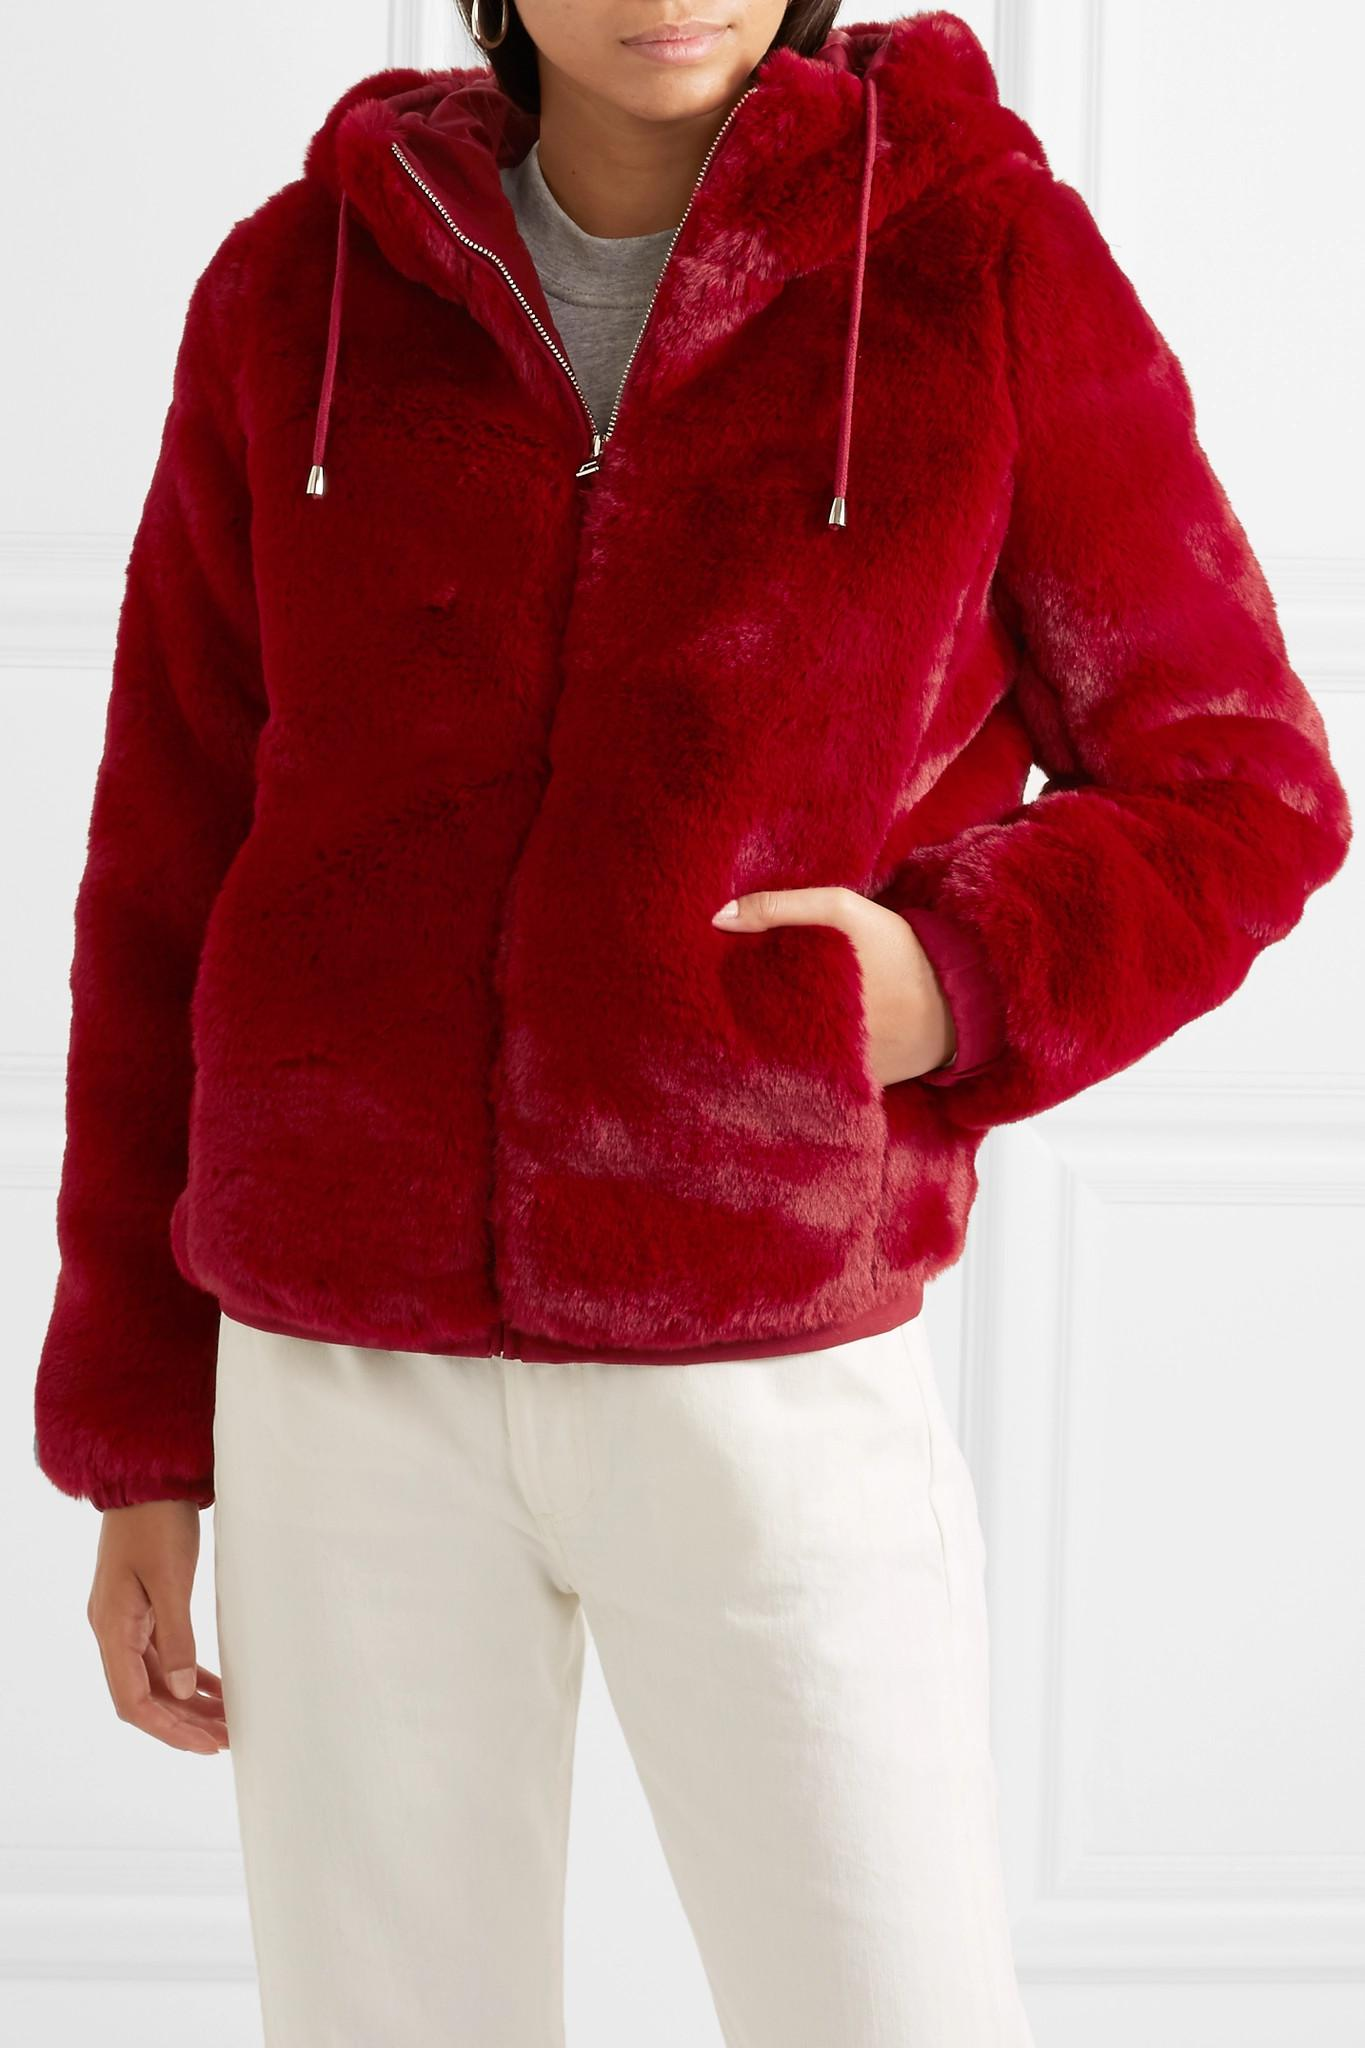 1eaa916802fb Maje - Red Hooded Faux Fur Jacket - Lyst. View fullscreen